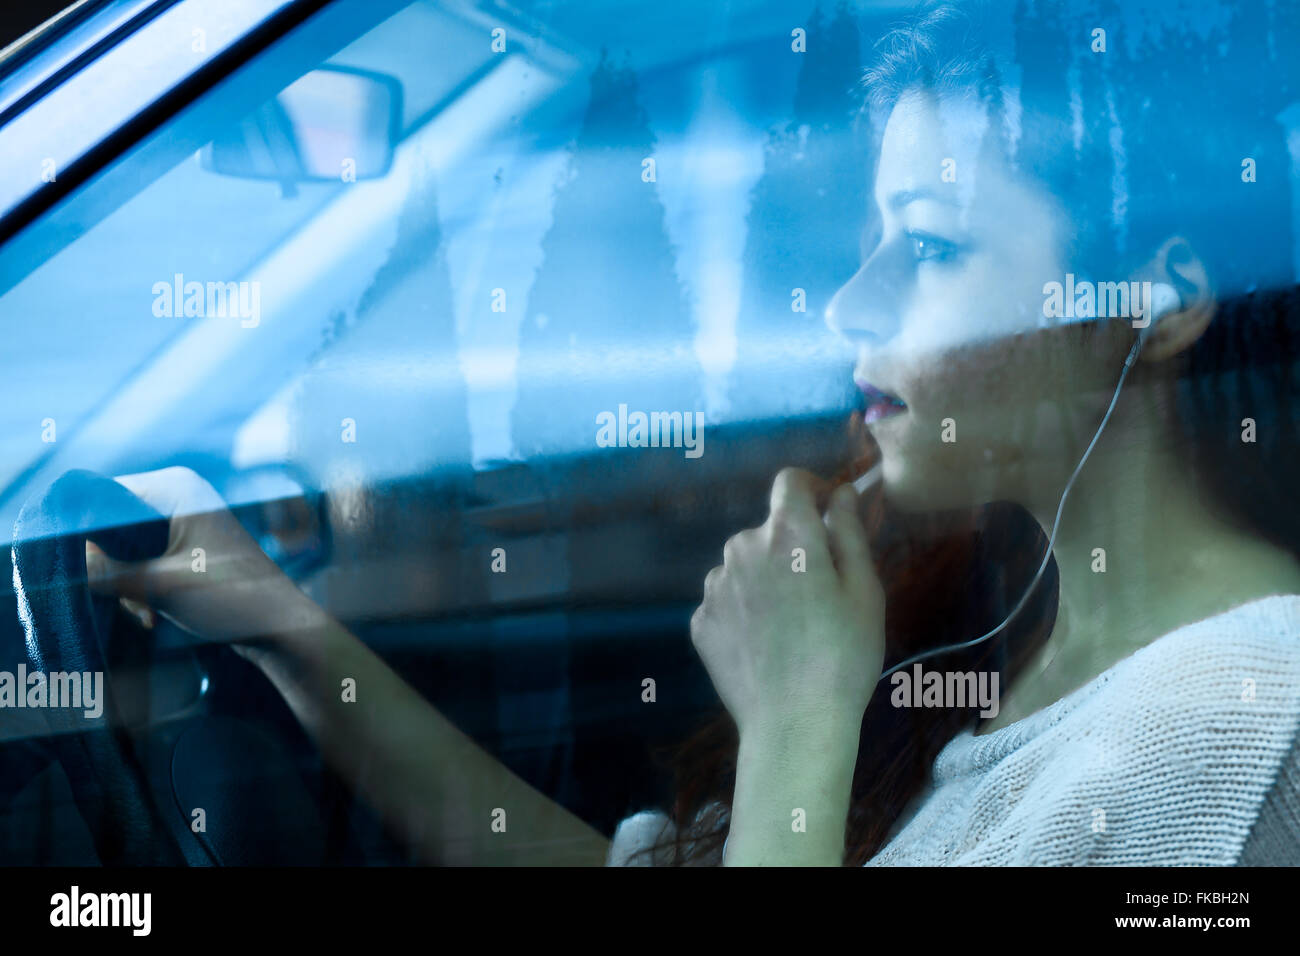 Woman Speaking in a Microphone with Earbuds while Driving a Car - Stock Image